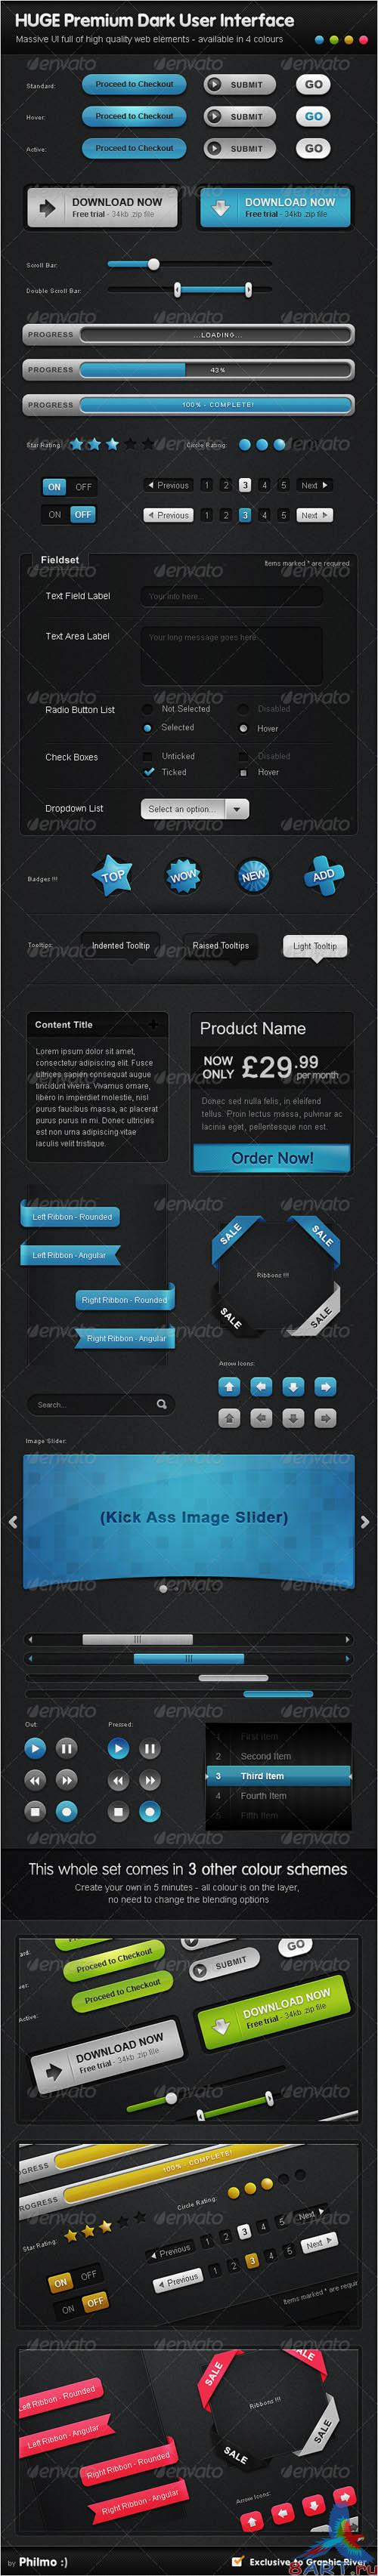 HUGE Premium Dark User Interface UI - 4 Colors [GraphicRiver]